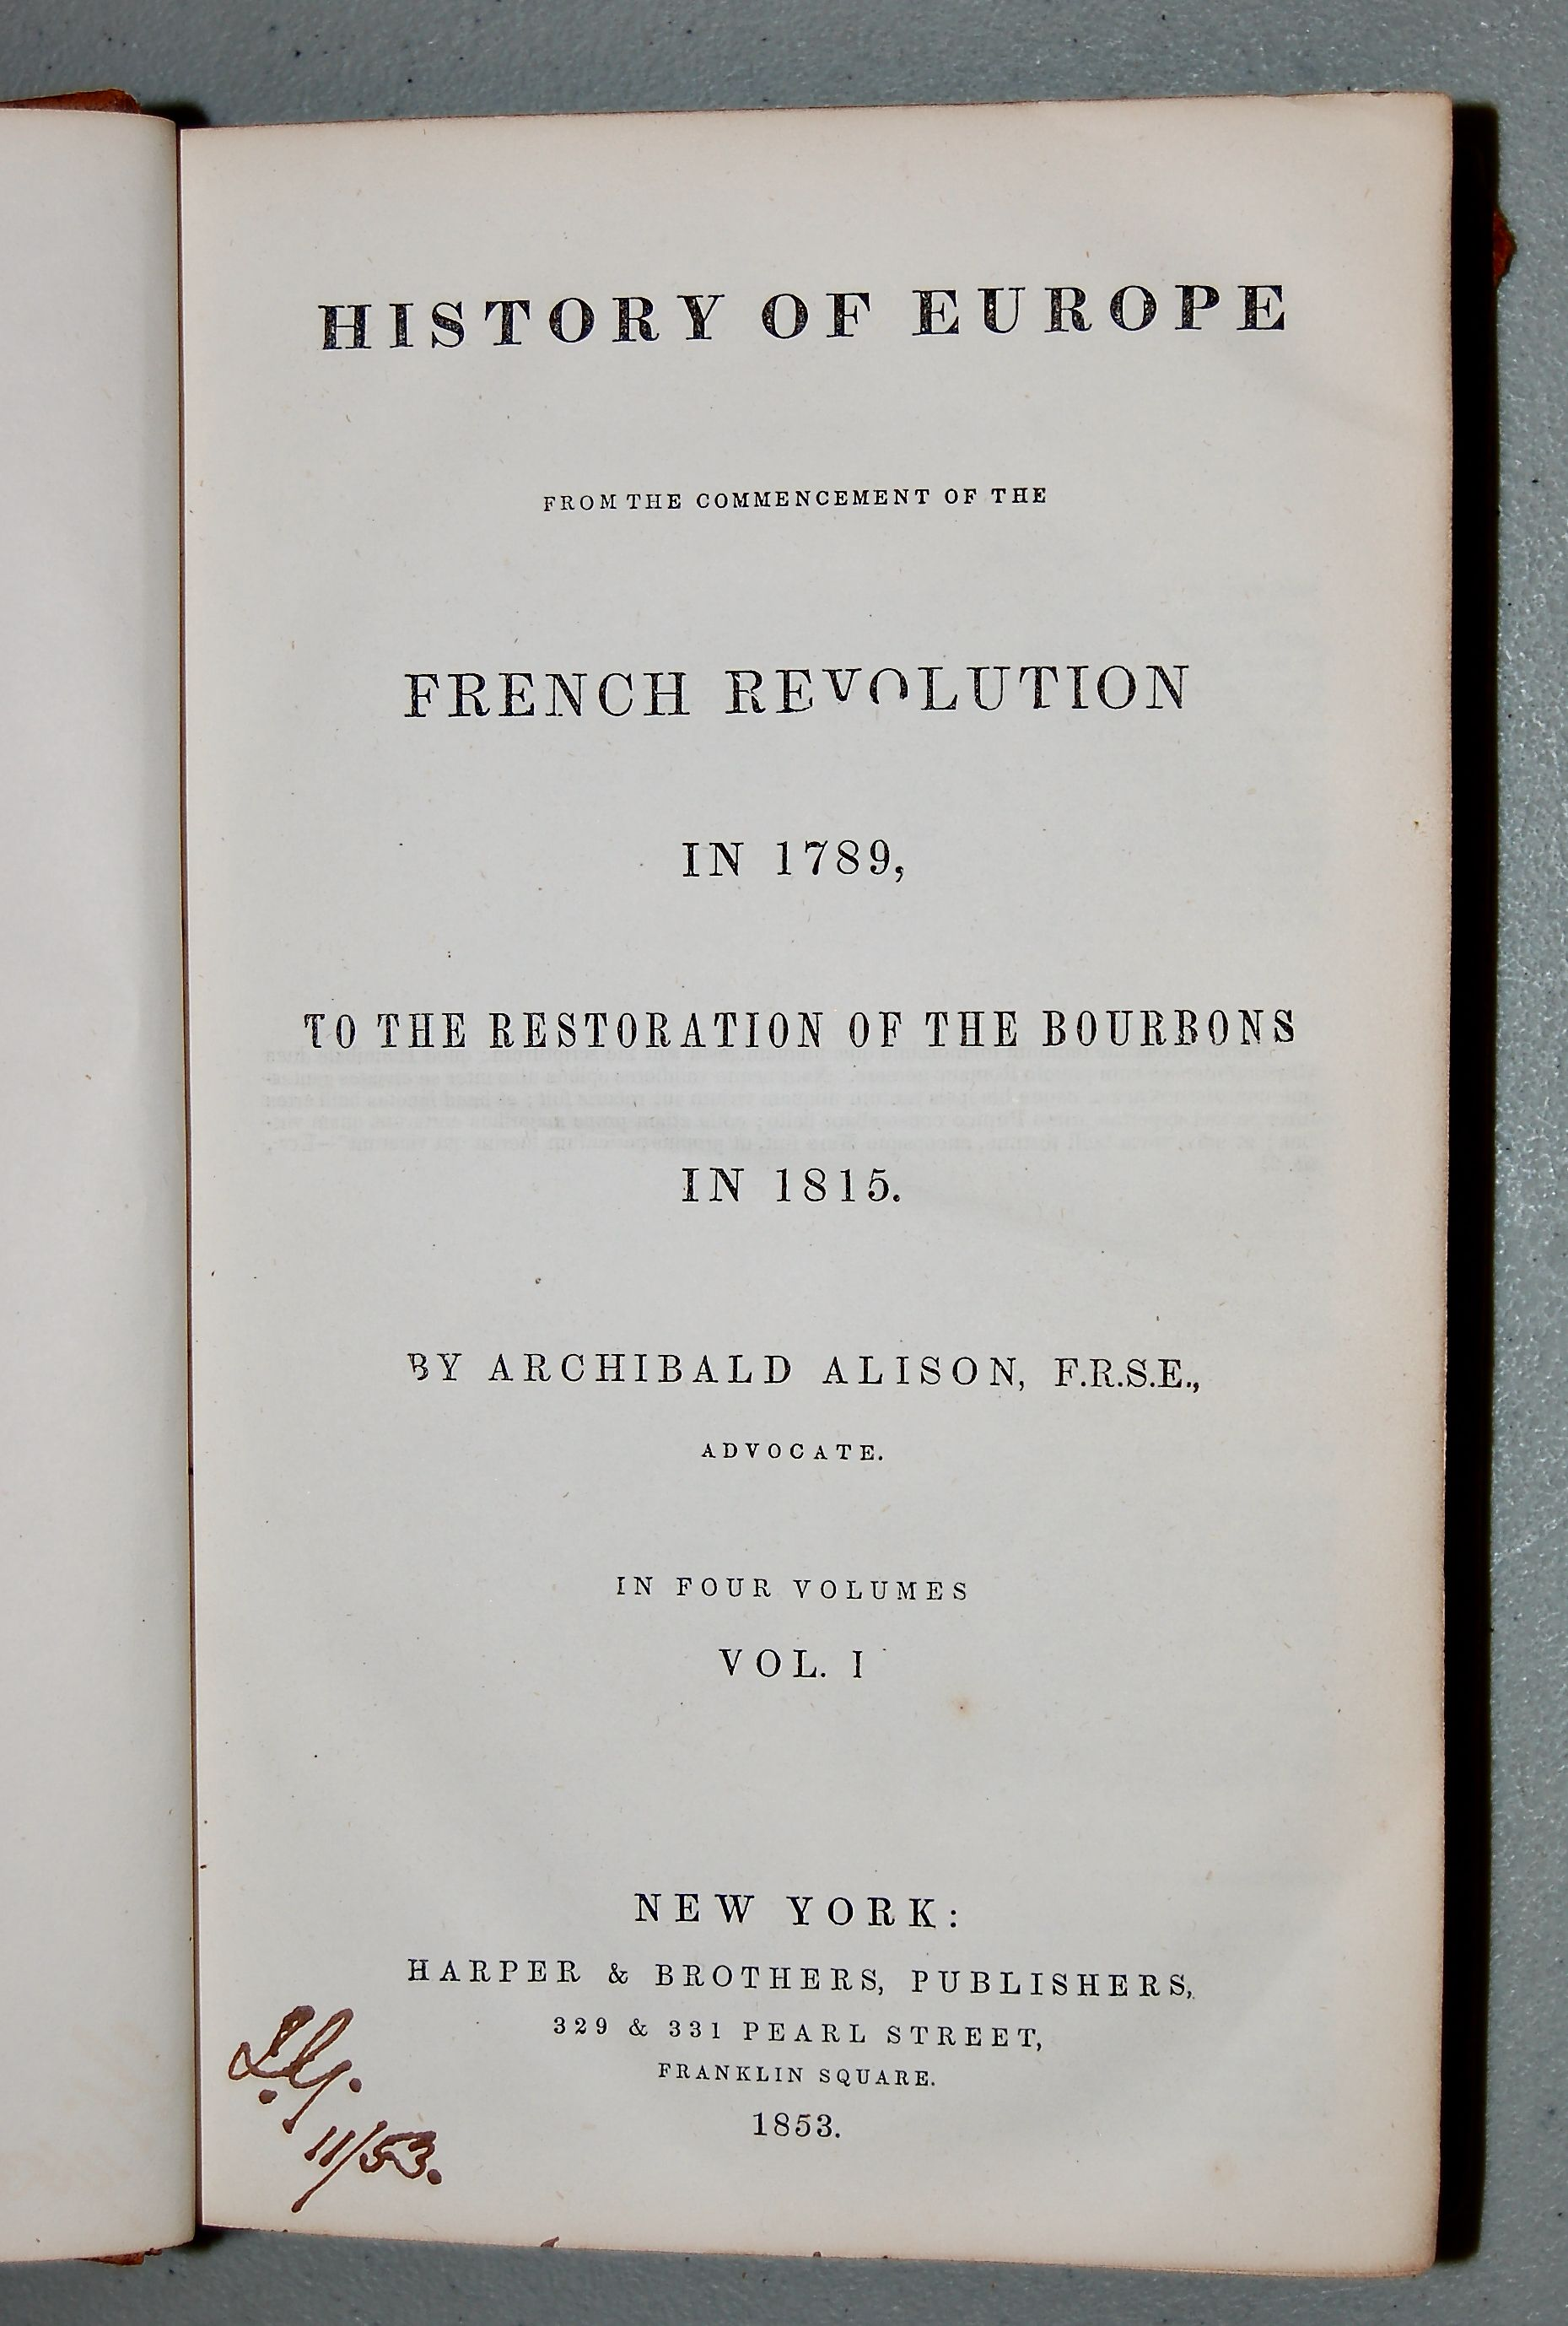 History of Europe from the Commencement of the French Revolution in 1789, to the Restoration of the Bourbons in 1815.